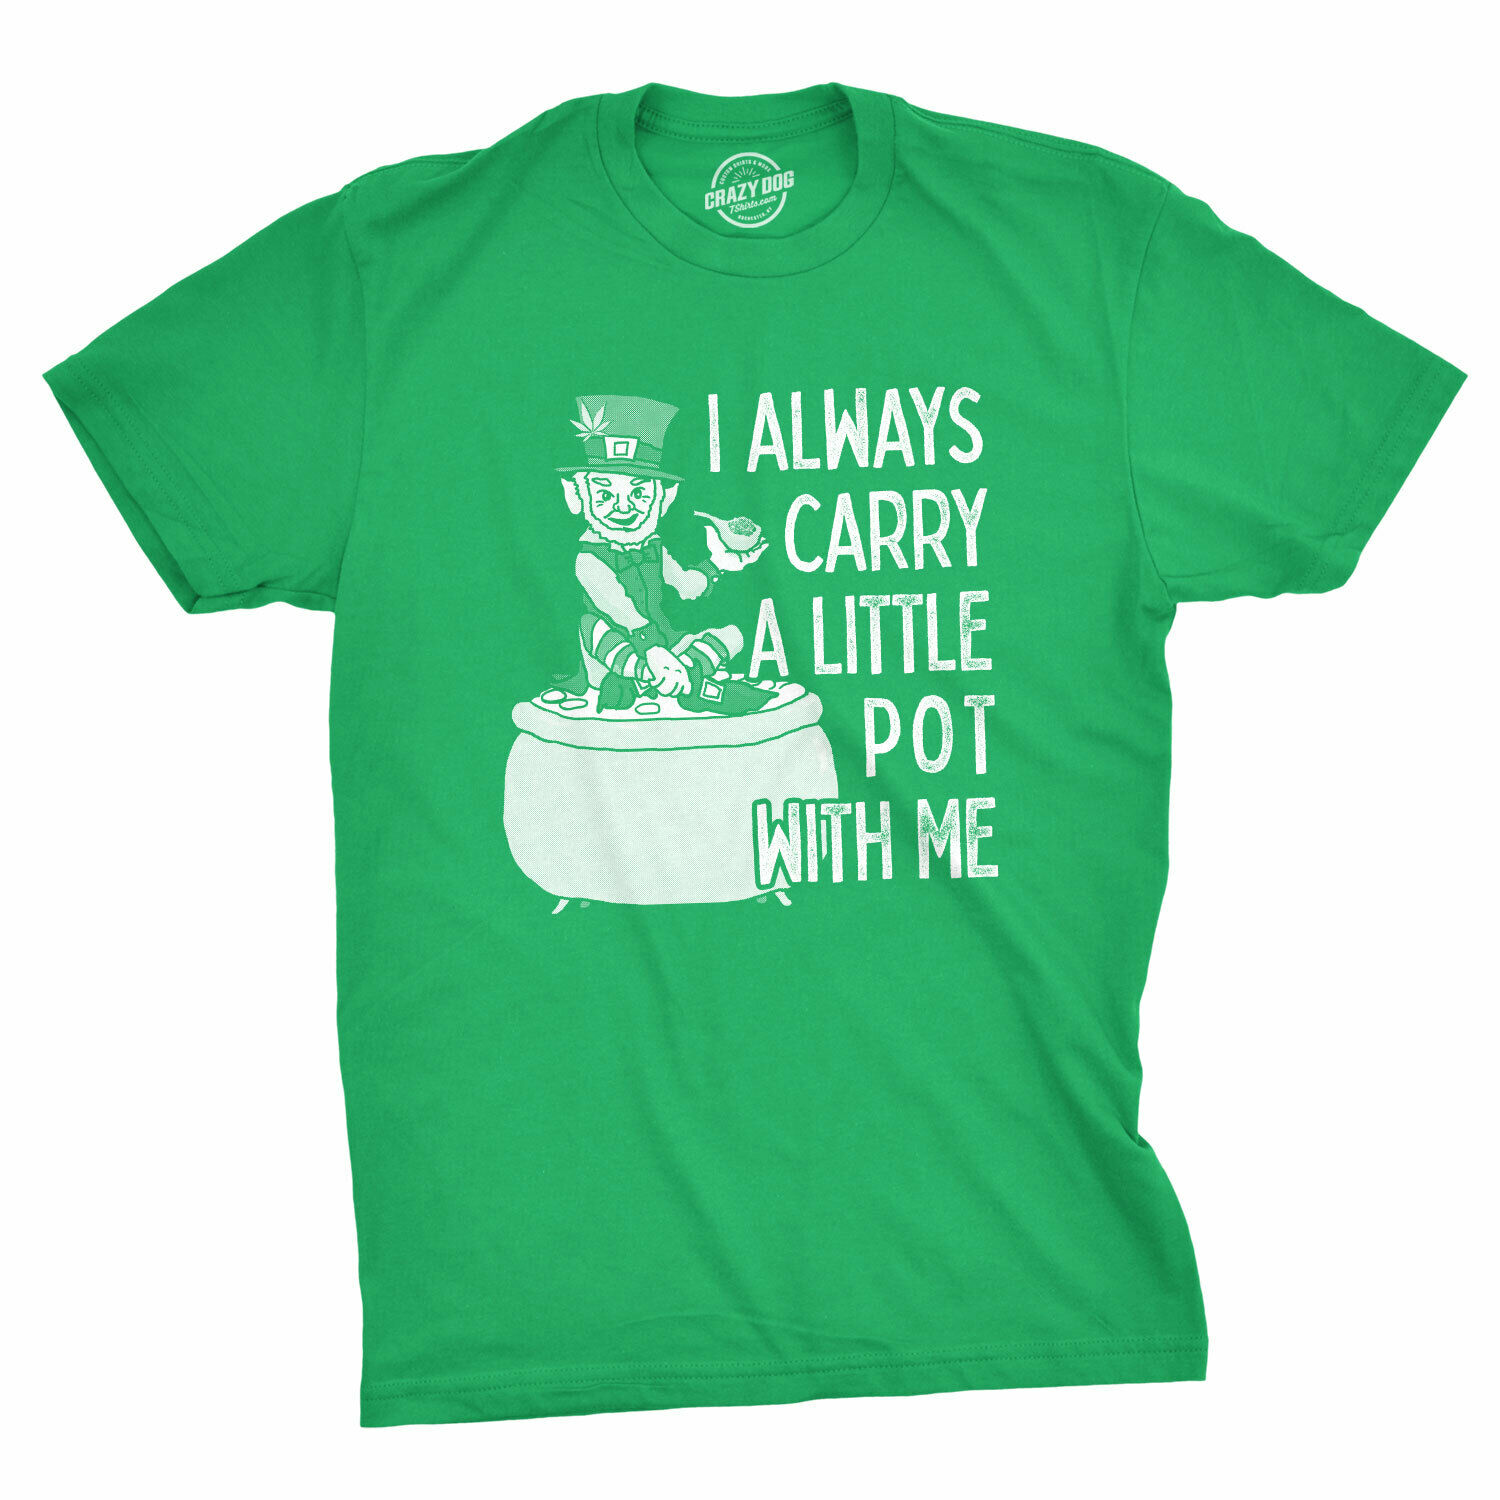 Mens I Always Carry A Little Pot With Me Tshirt Funny St Patricks Day Marijuana 1